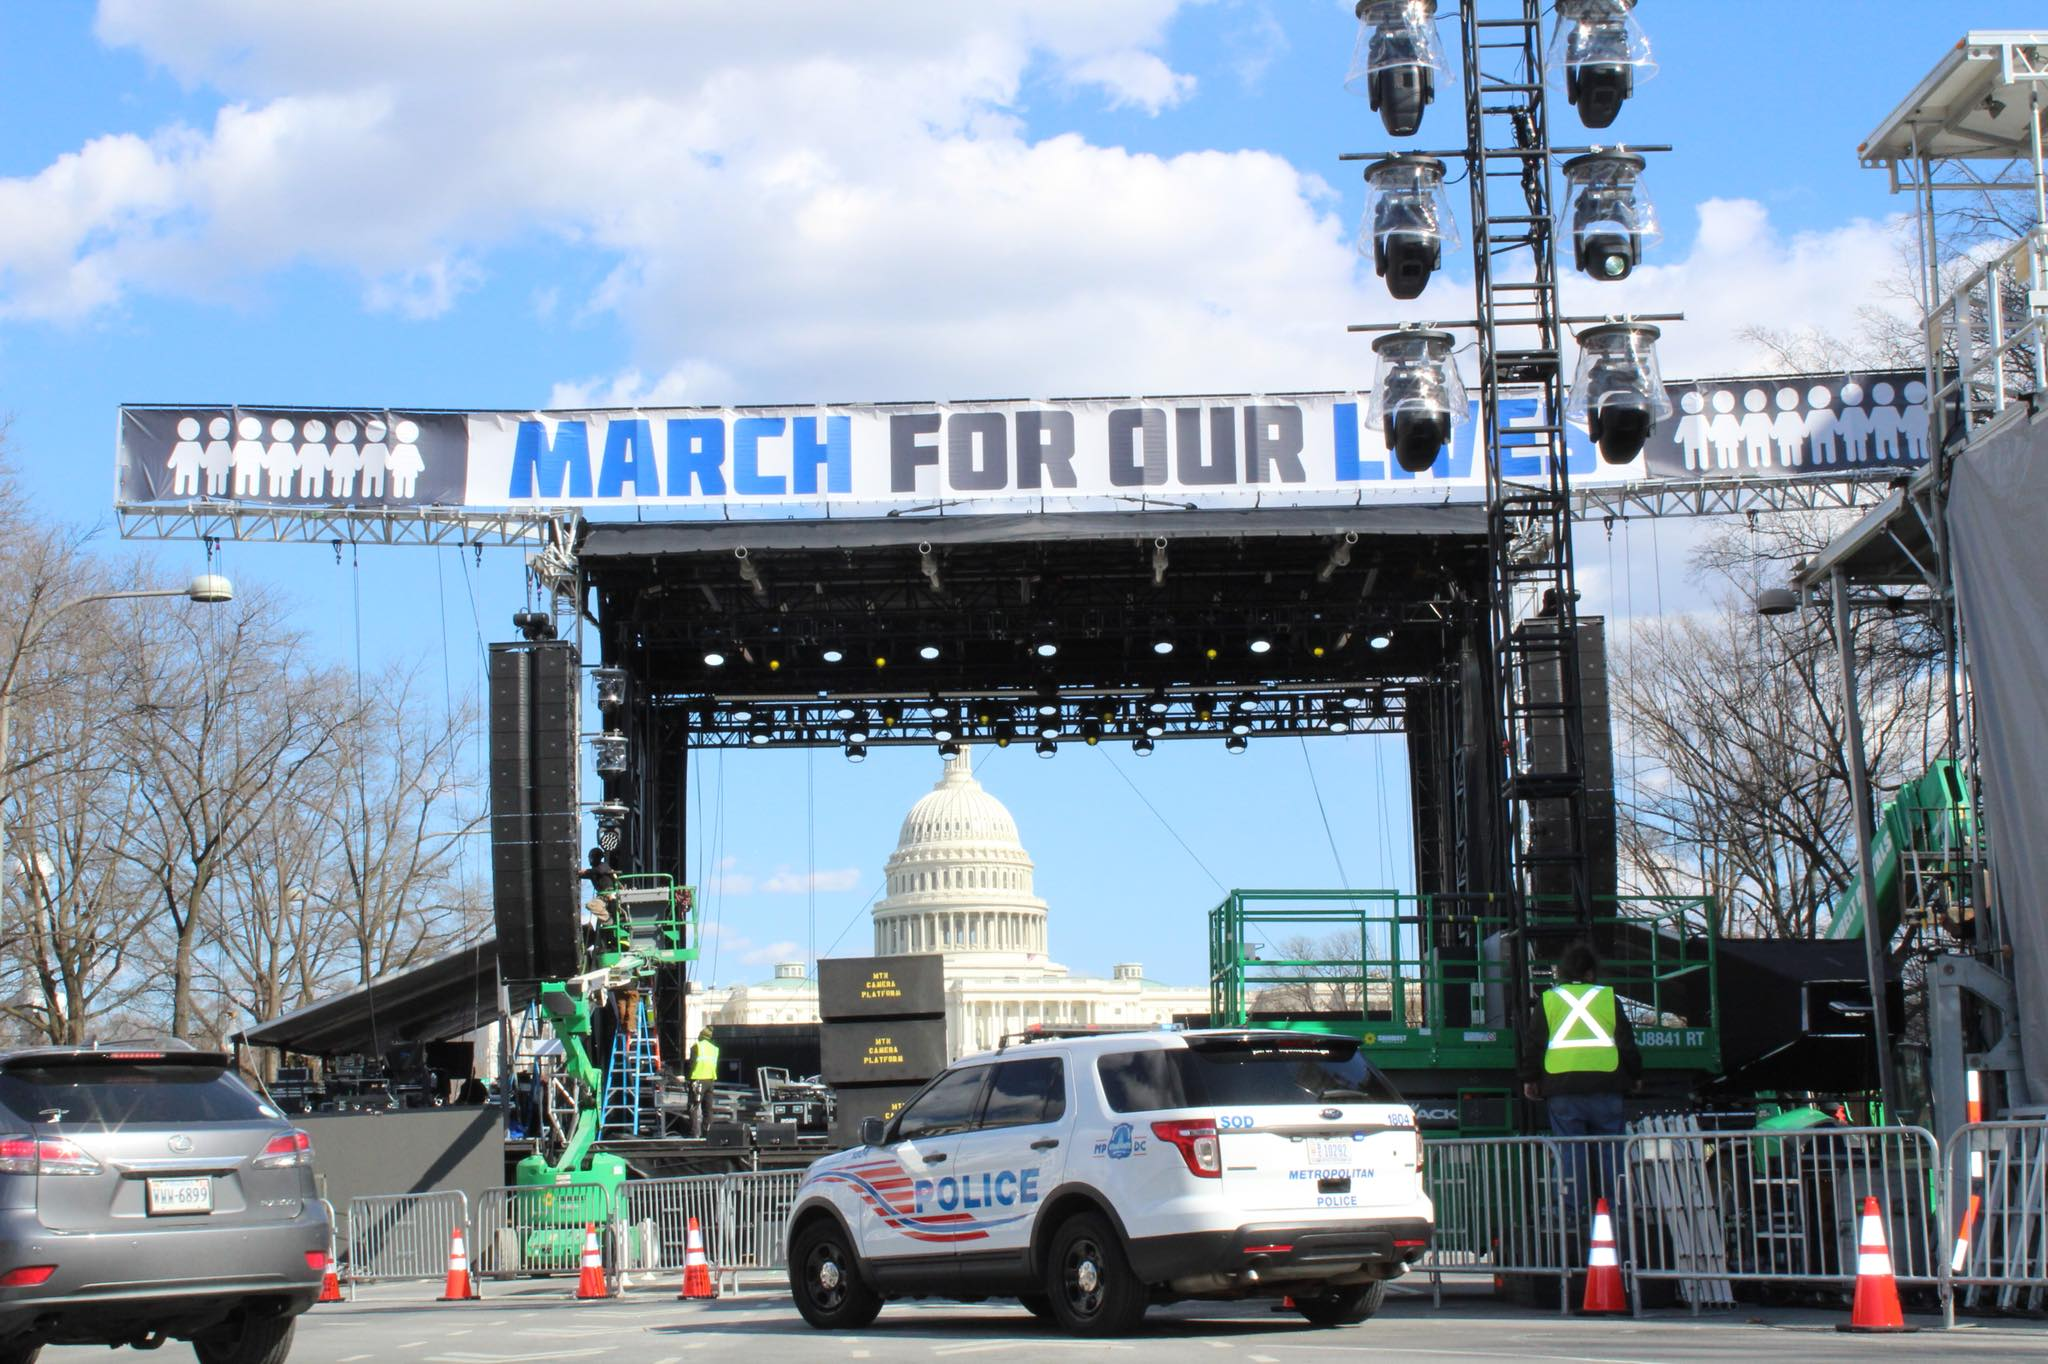 <div class='meta'><div class='origin-logo' data-origin='WTVD'></div><span class='caption-text' data-credit='DeJuan Hoggard'>March for Our Lives in Washington D.C.</span></div>